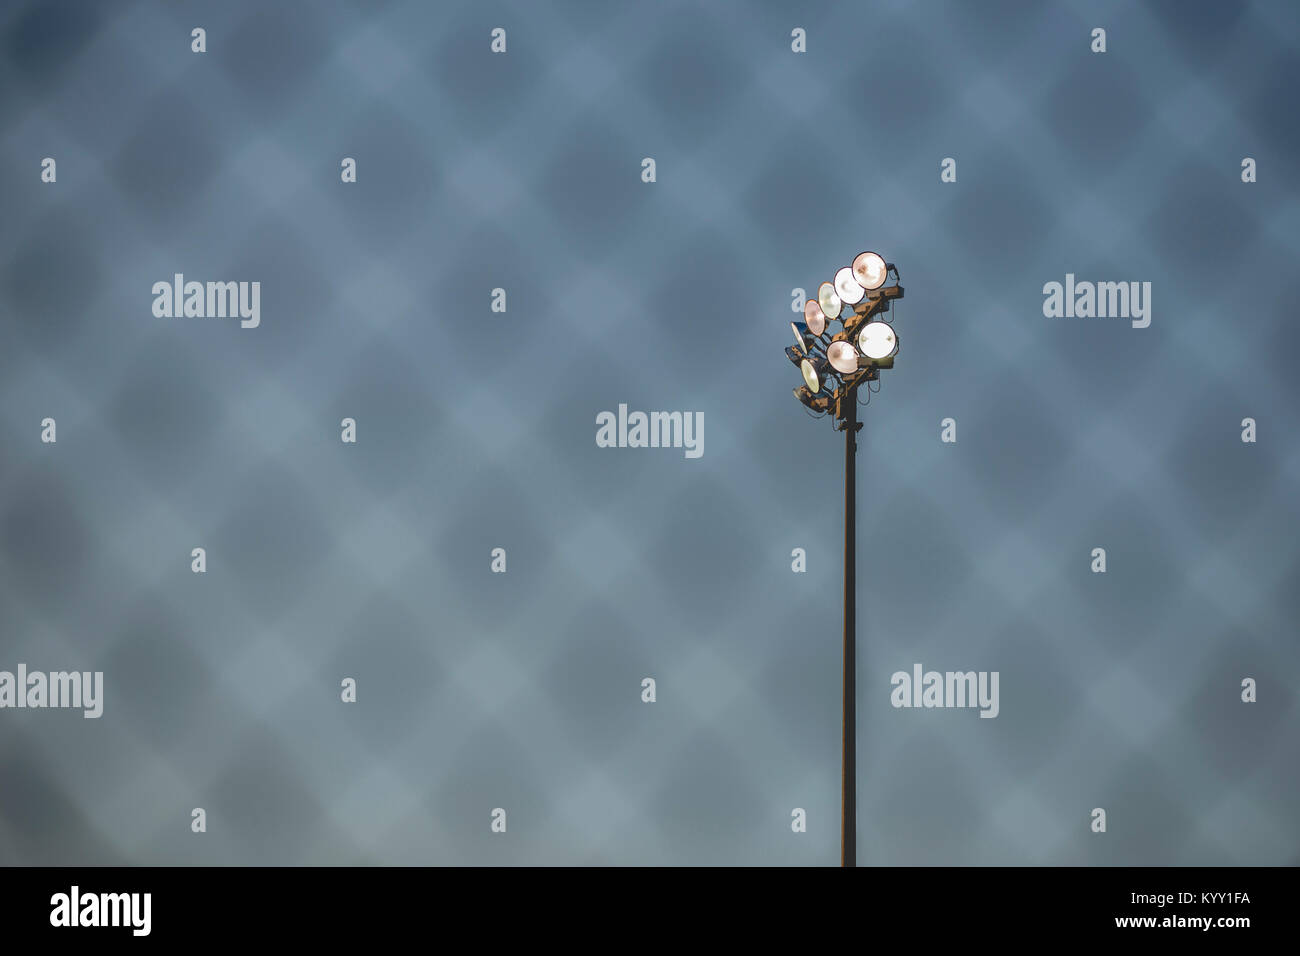 Low angle view of floodlight against sky seen through fence at baseball stadium - Stock Image